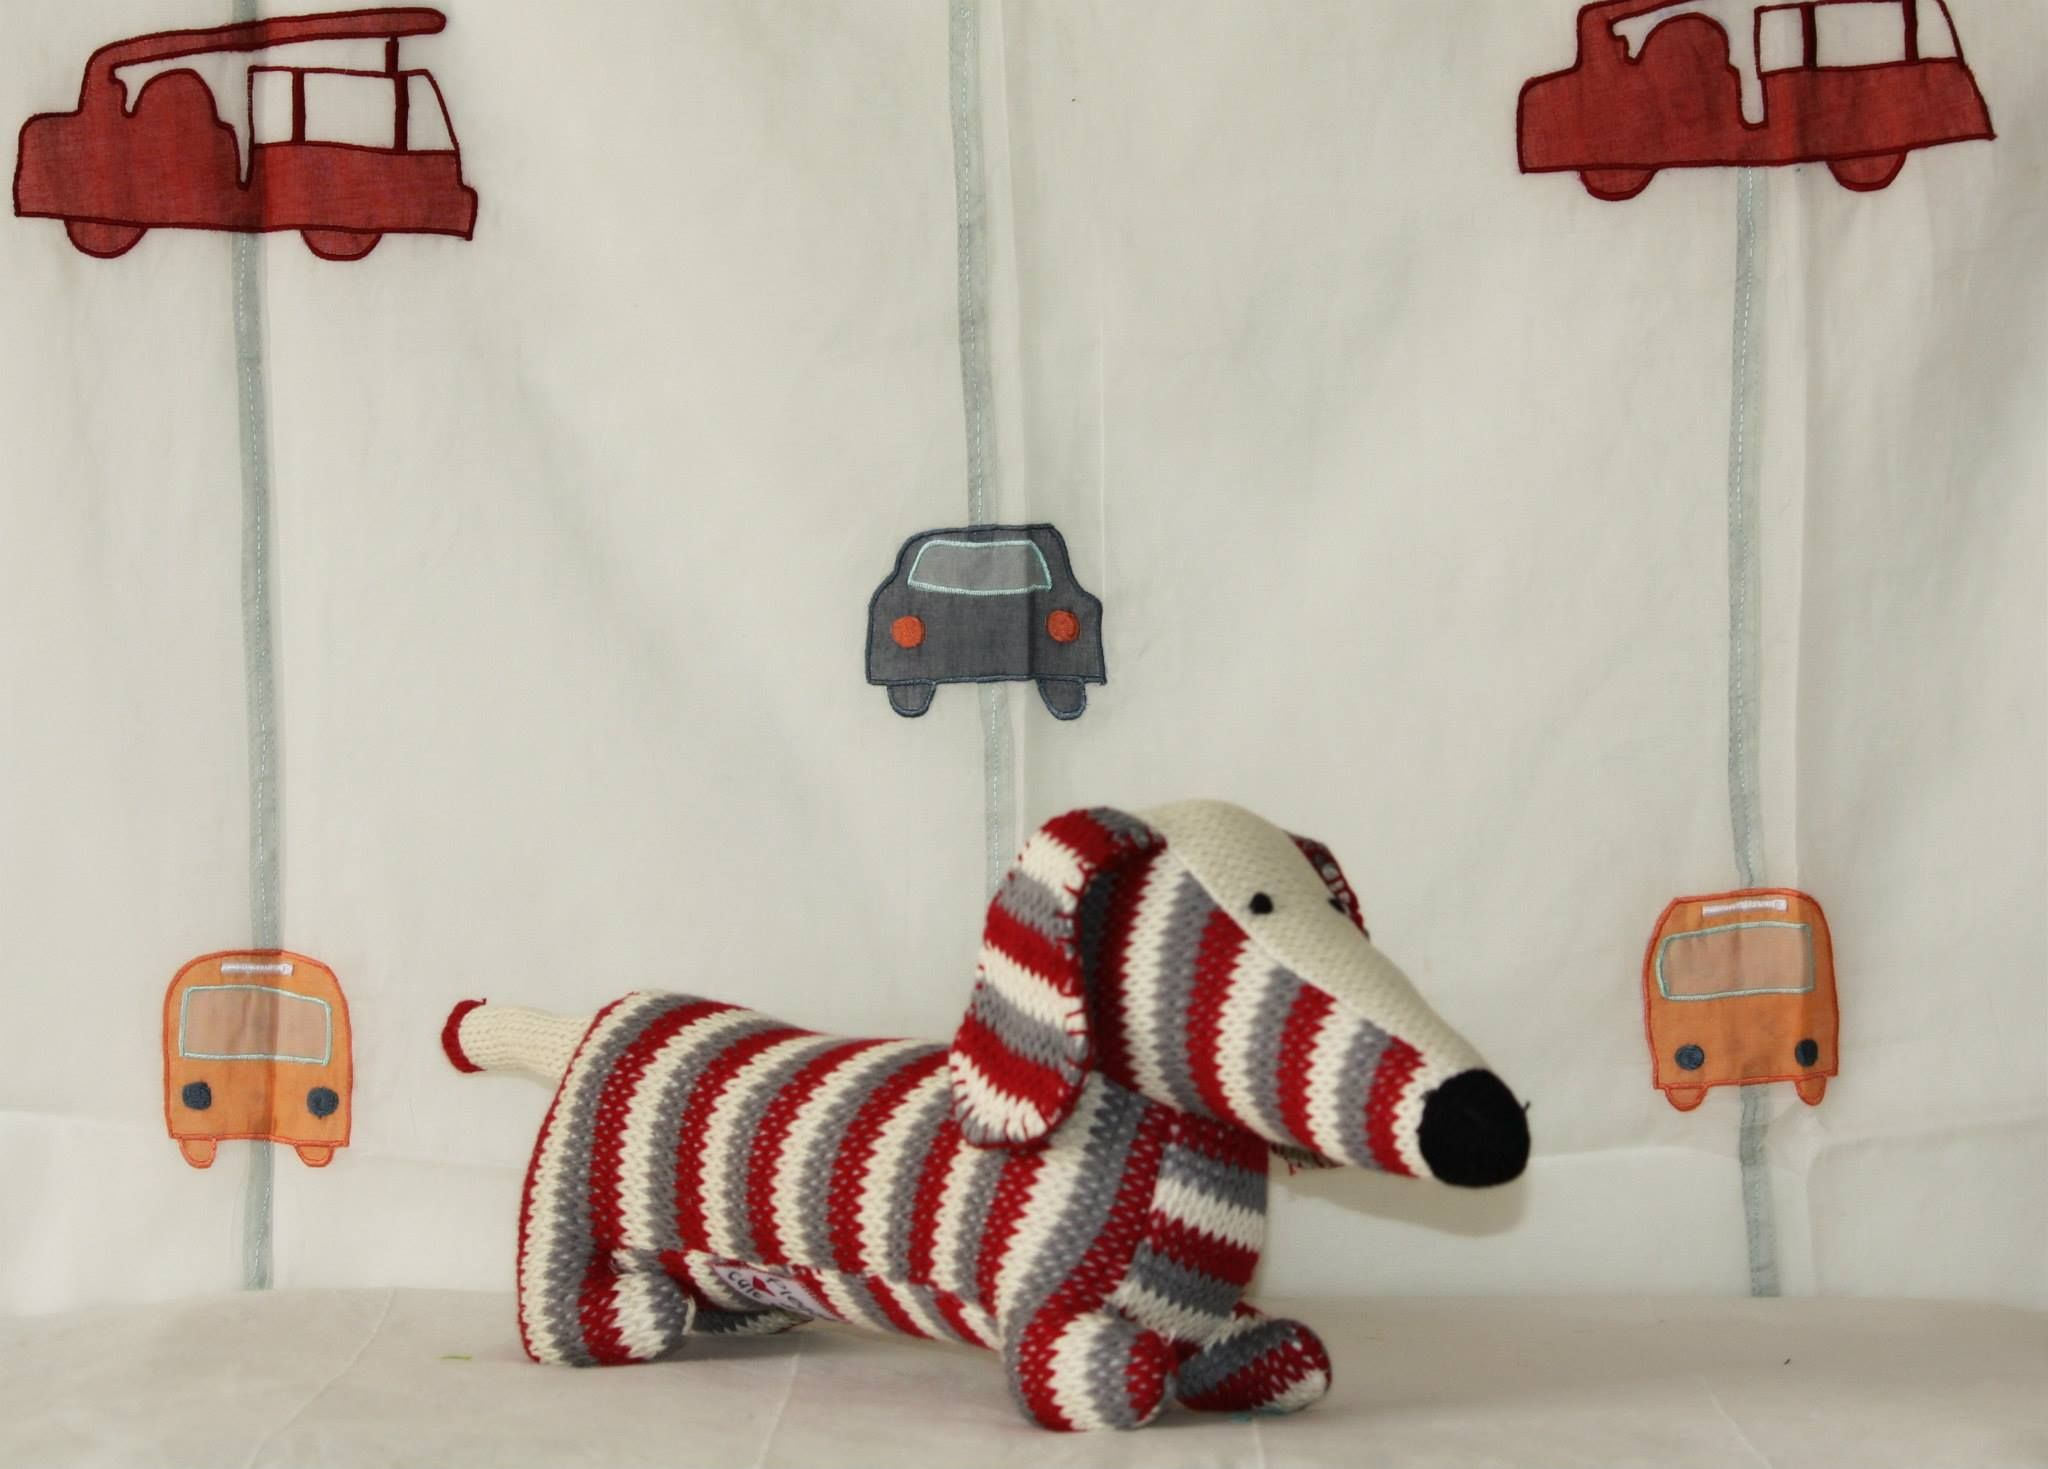 Retro the stripped footlong dog  #Dog #softtoy #tinytoys #red #kids #india #indian #footlong #Baby #babyboy #babygirl #boy #girl #gift #toy  If you are interested in buying this toy, shop at https://www.facebook.com/connectZoey  Or write us at connectzoey@gmail.com